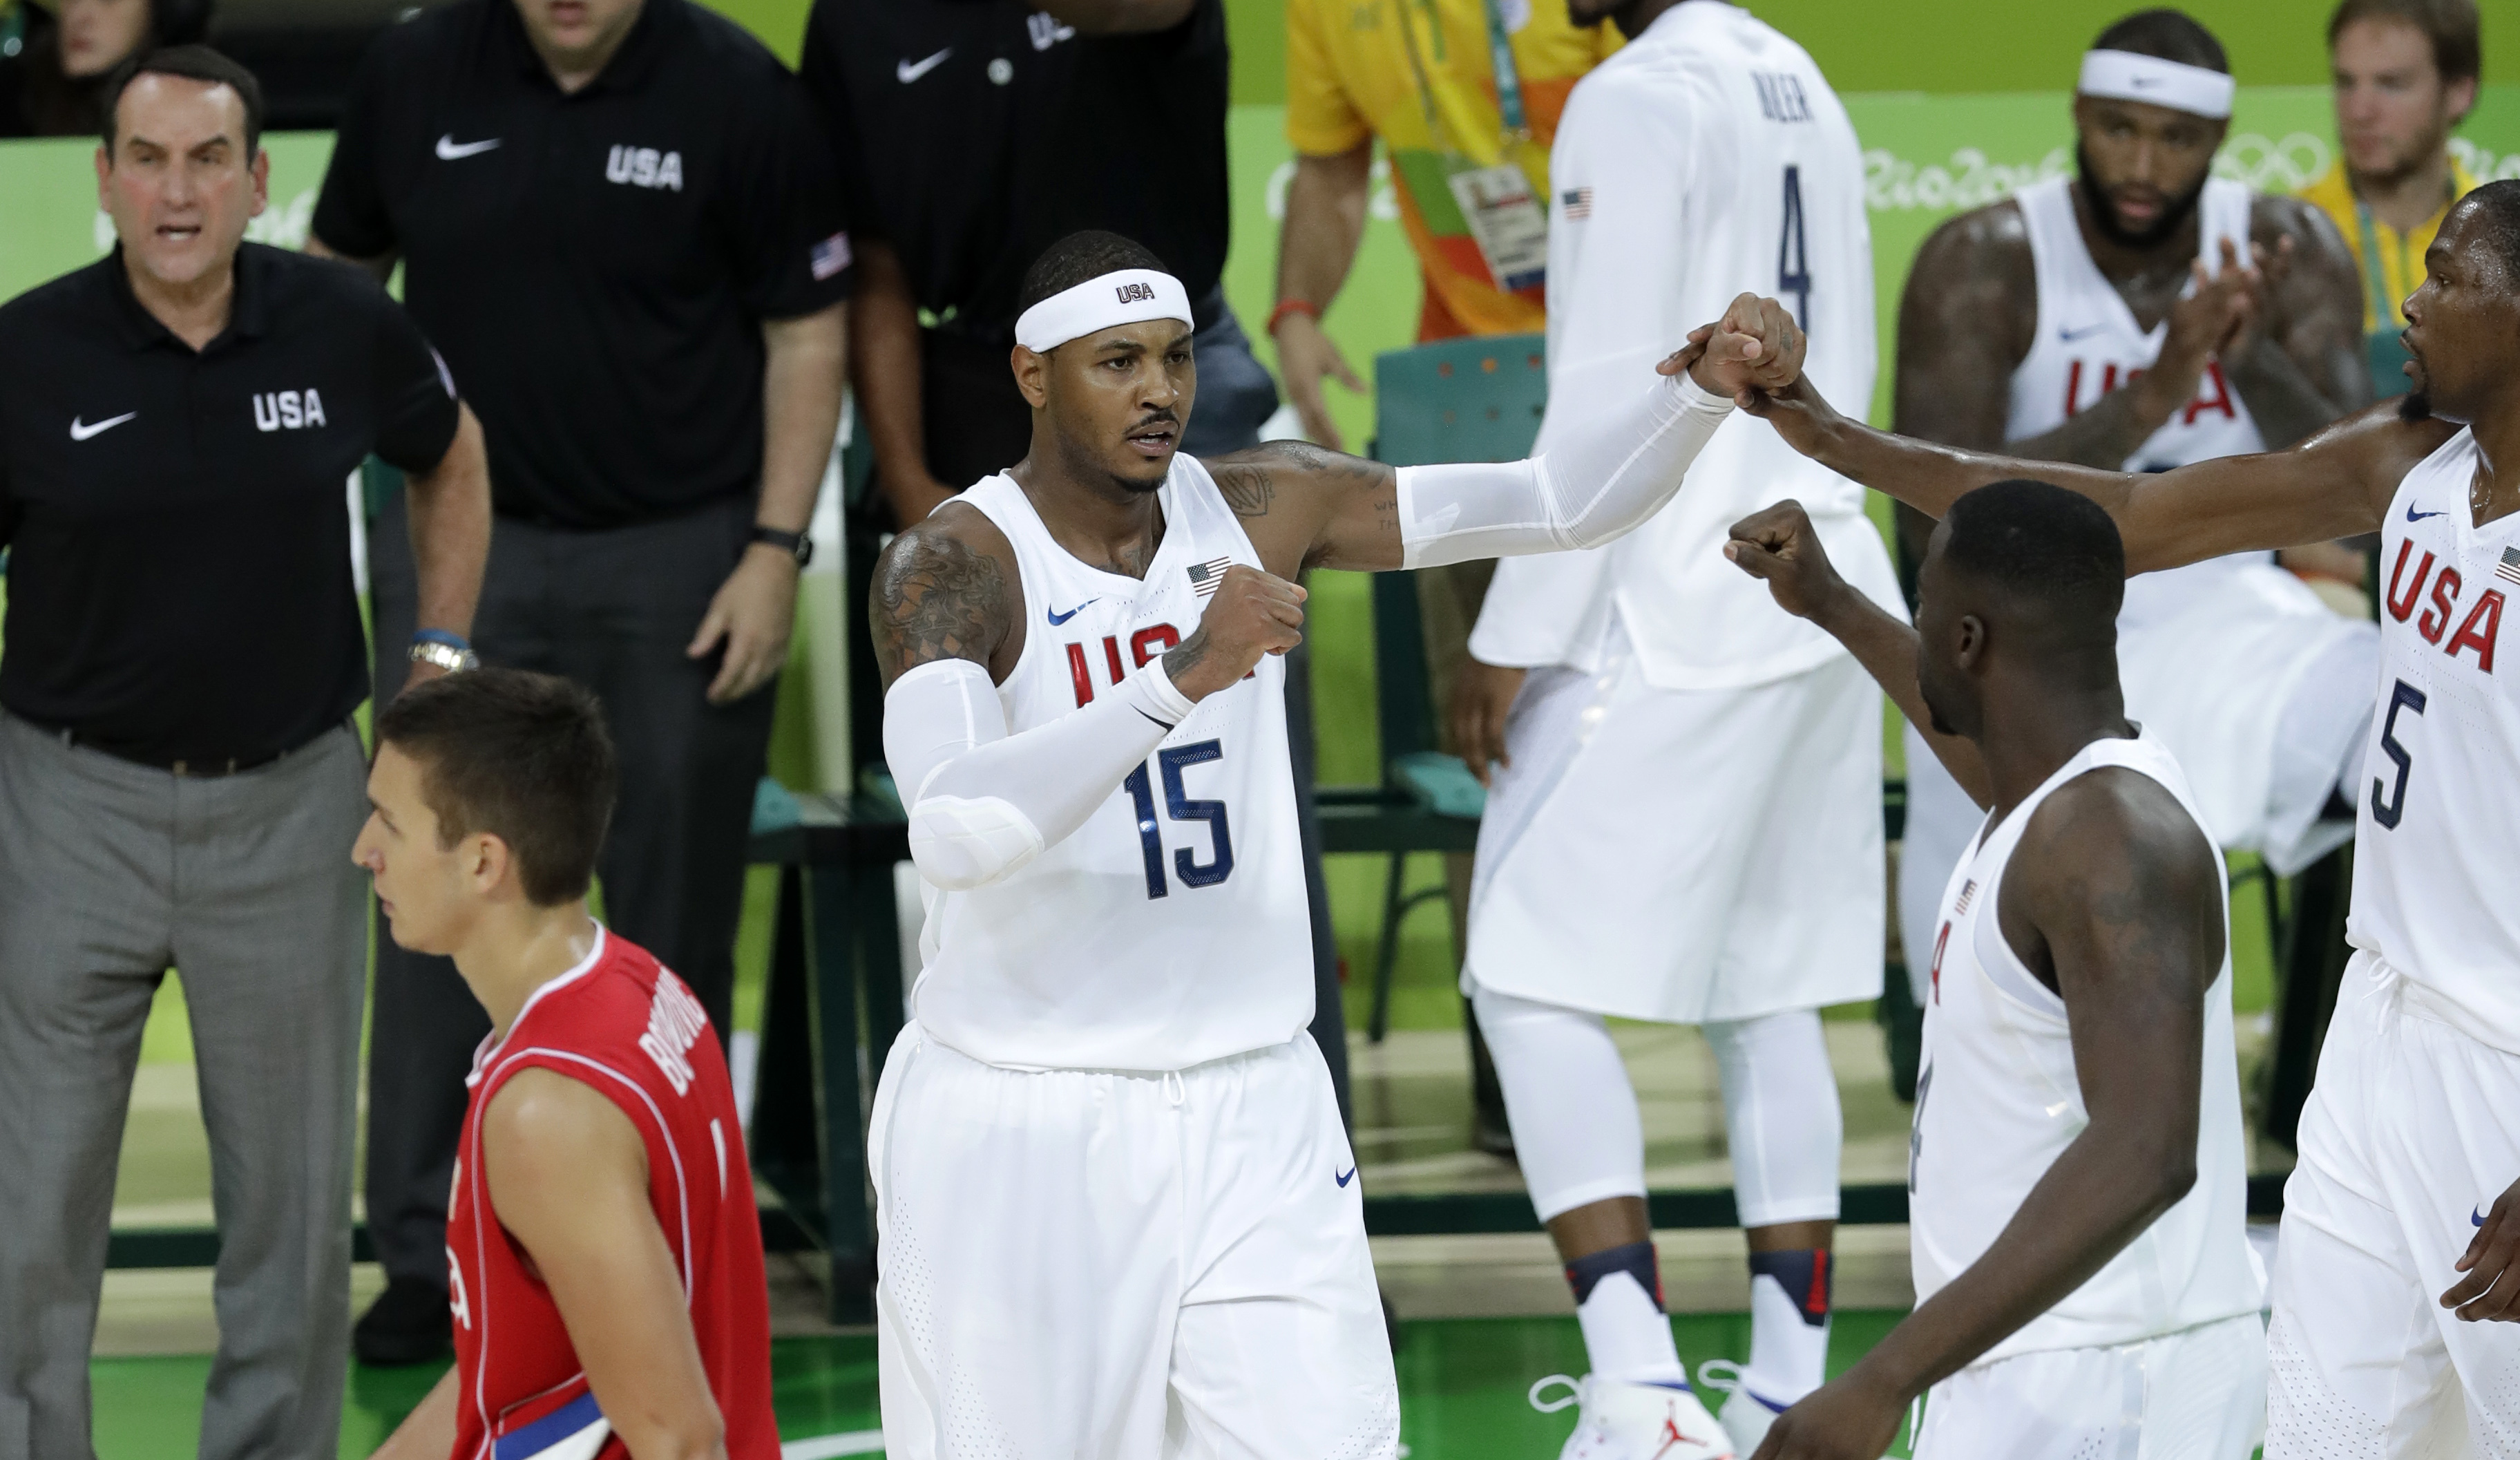 United States' Carmelo Anthony (15) celebrates with teammates after making a basket during a basketball game against Serbia at the 2016 Summer Olympics in Rio de Janeiro, Brazil, Friday, Aug. 12, 2016. (AP Photo/Charlie Neibergall)